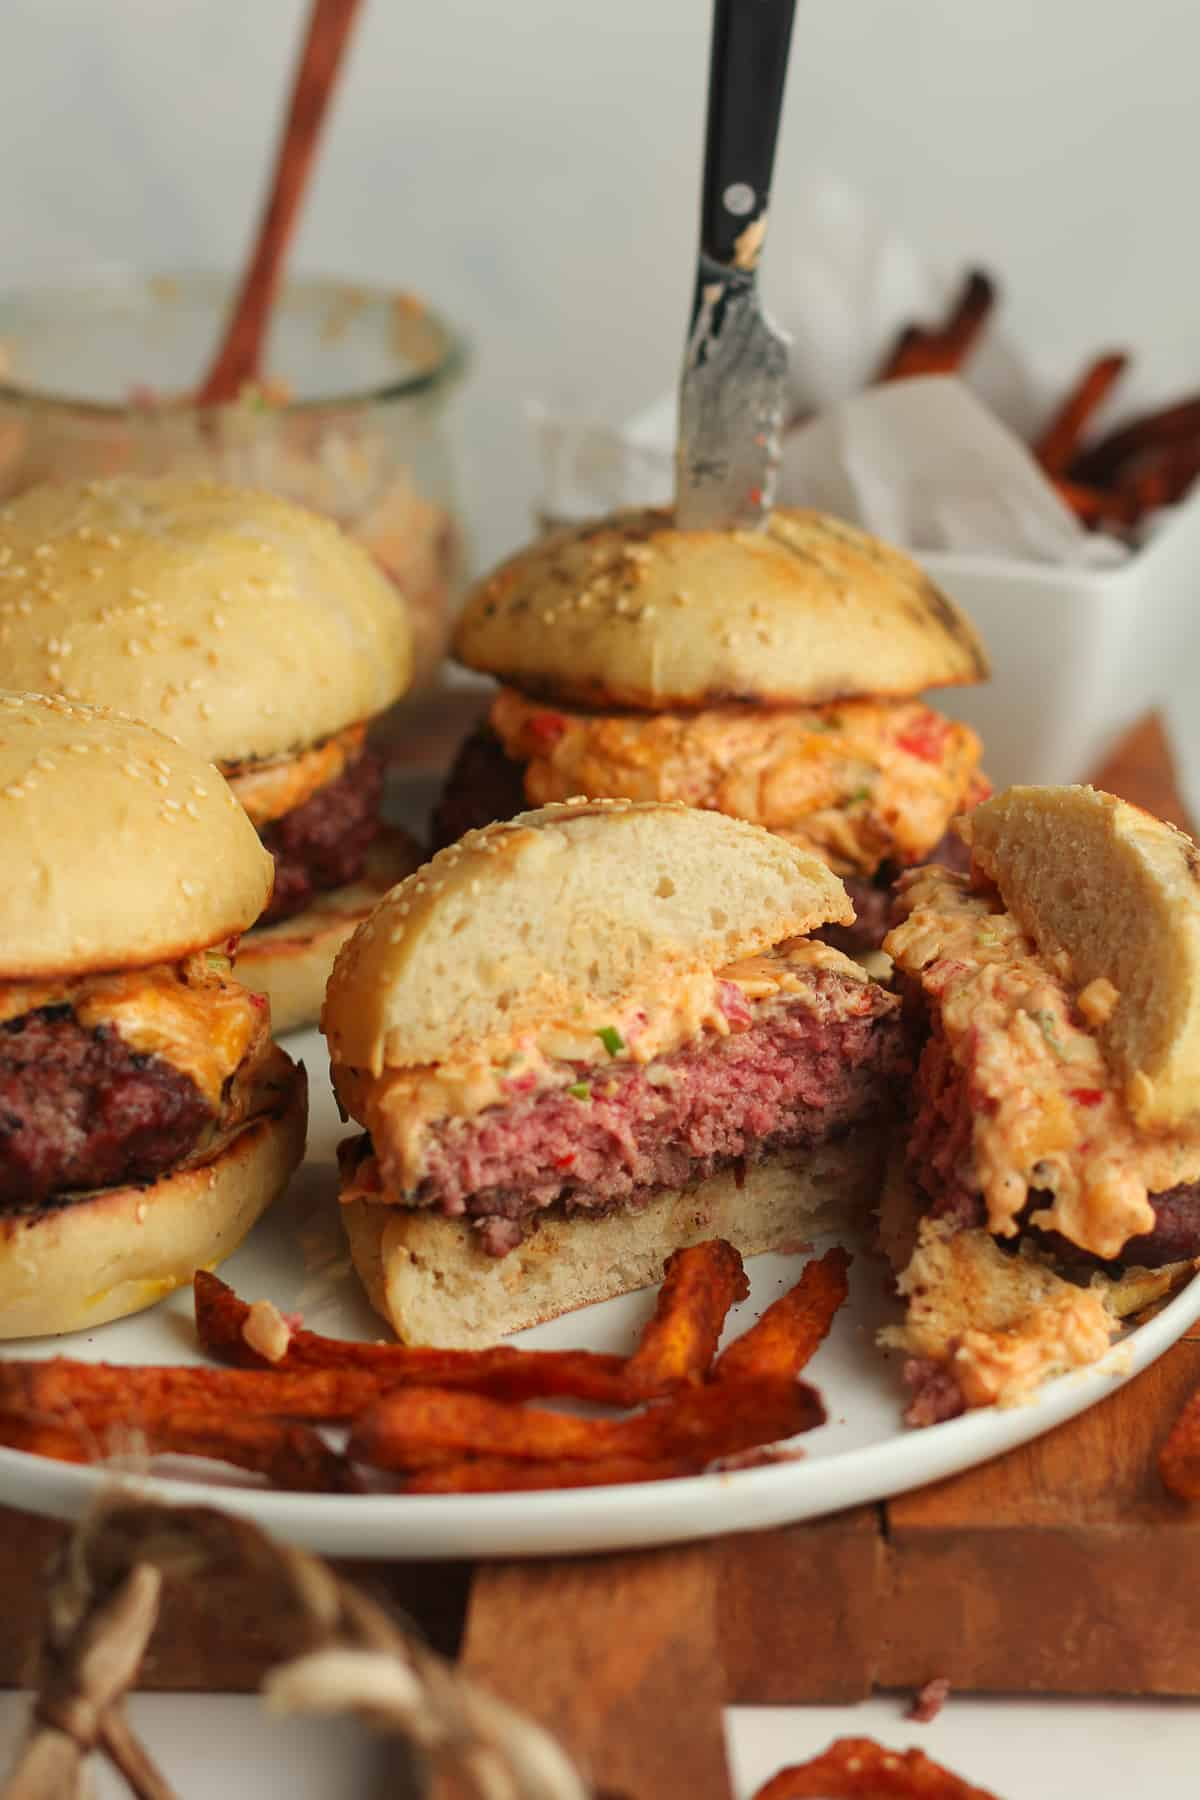 The pimento burgers on a plate, with one cut in half.